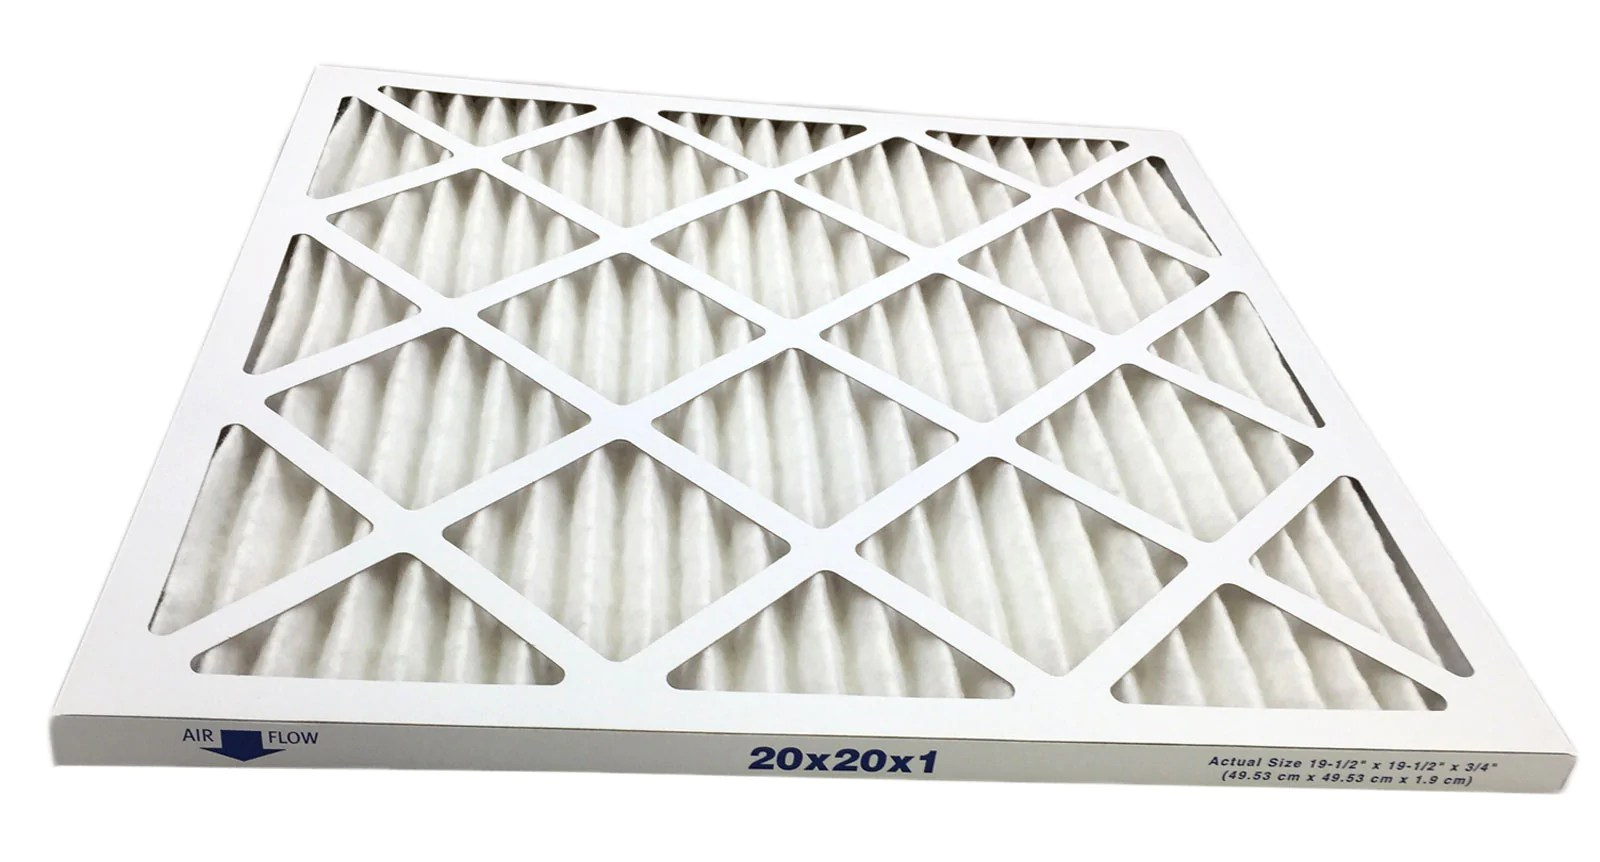 Choosing the best 20x20x1 Air Filter For Your Allergies